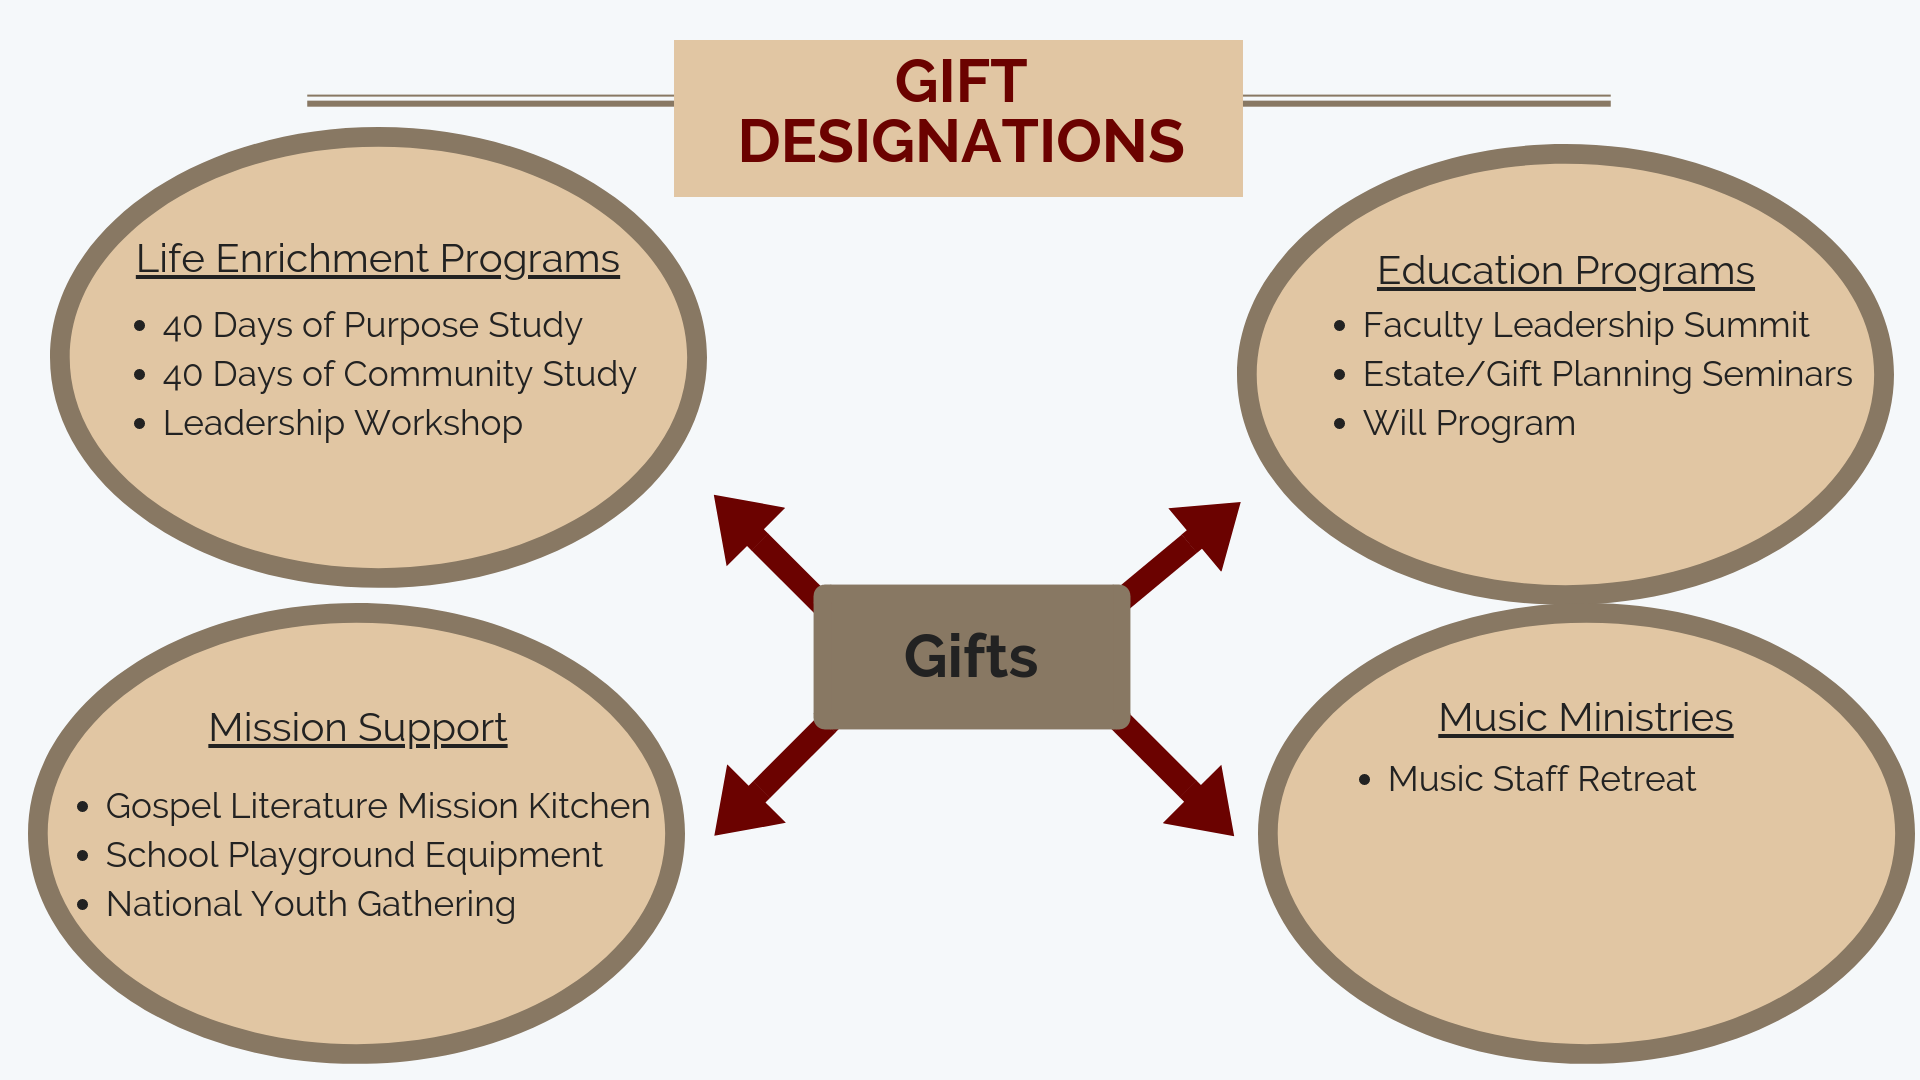 Foundation Gift Designations.png